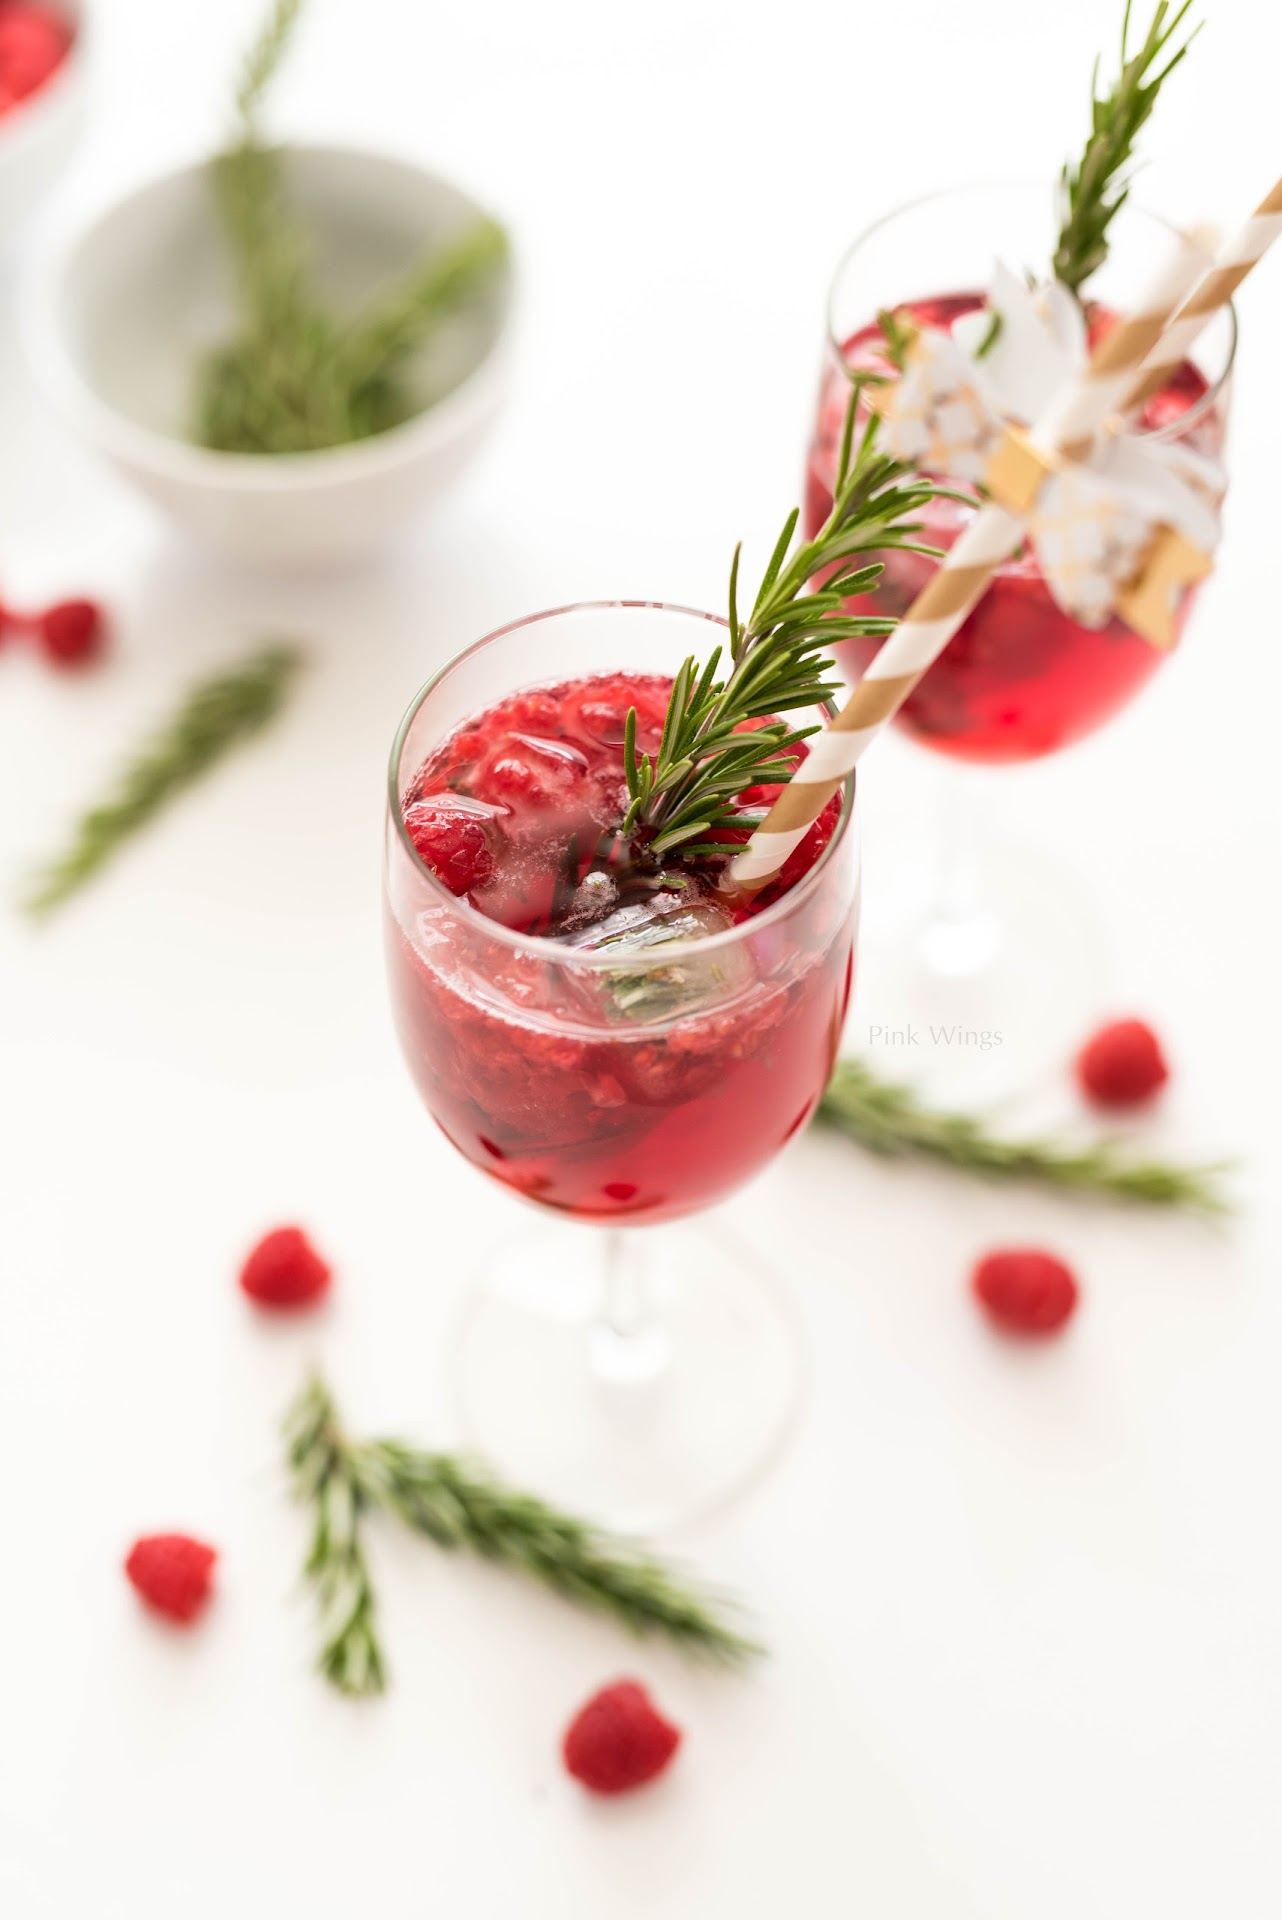 rosemary drink, cocktail recipe, mocktail, alcohol free, winter party drink, holiday party drink recipe, christmas, new year's, gold drink stirrers, cranberry juice, raspberry ice cubes, raspberry juice, san francisco california bay area blogger, mormon lds food blogger